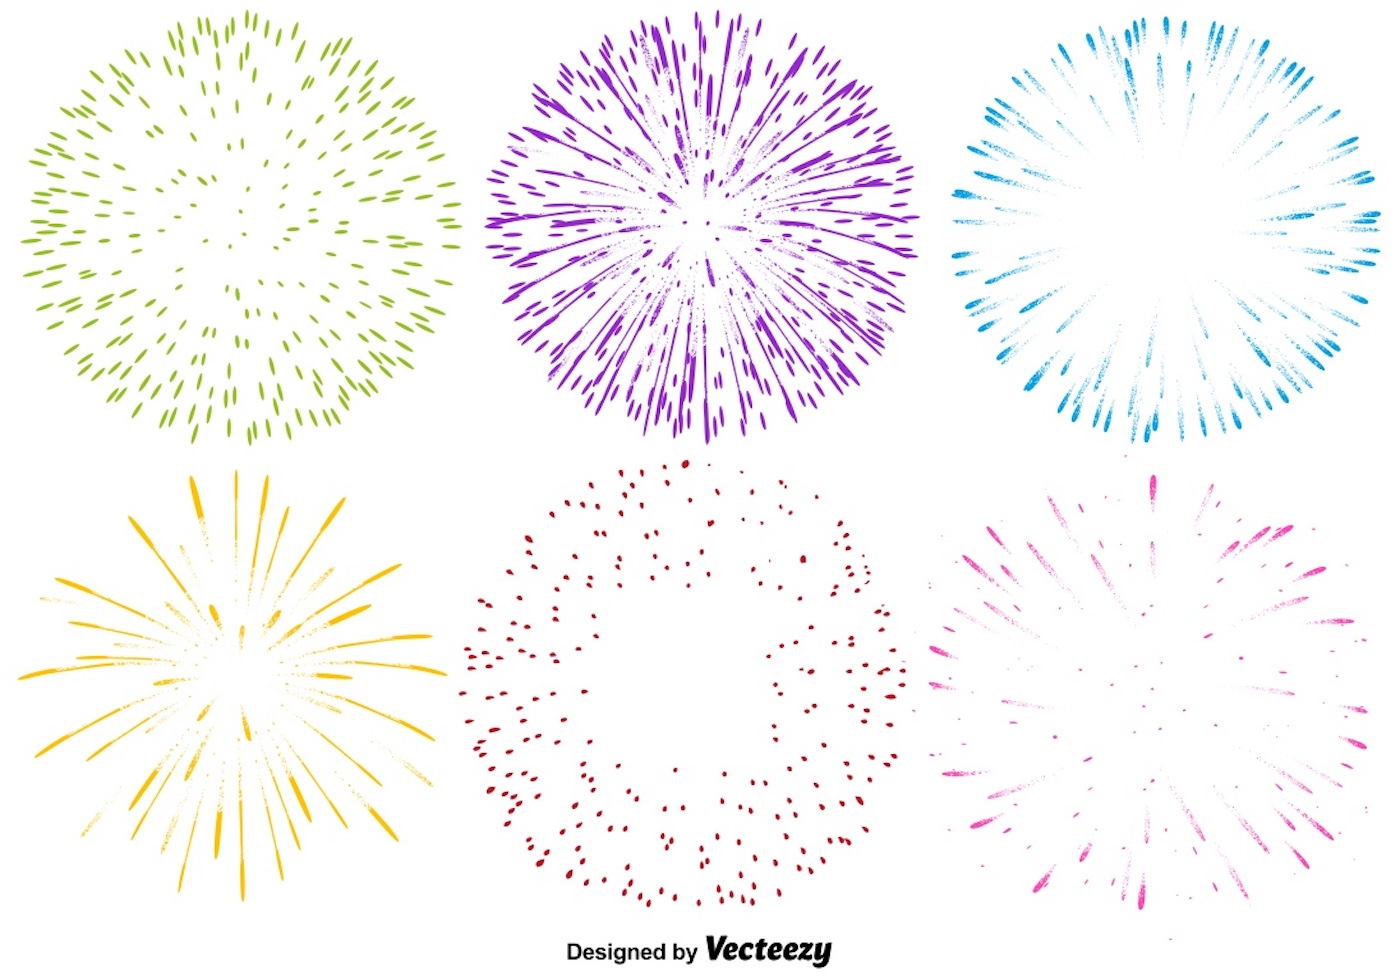 Vector Set Of Multicolored Firework Icons - Download Free ...Fireworks Icon Image